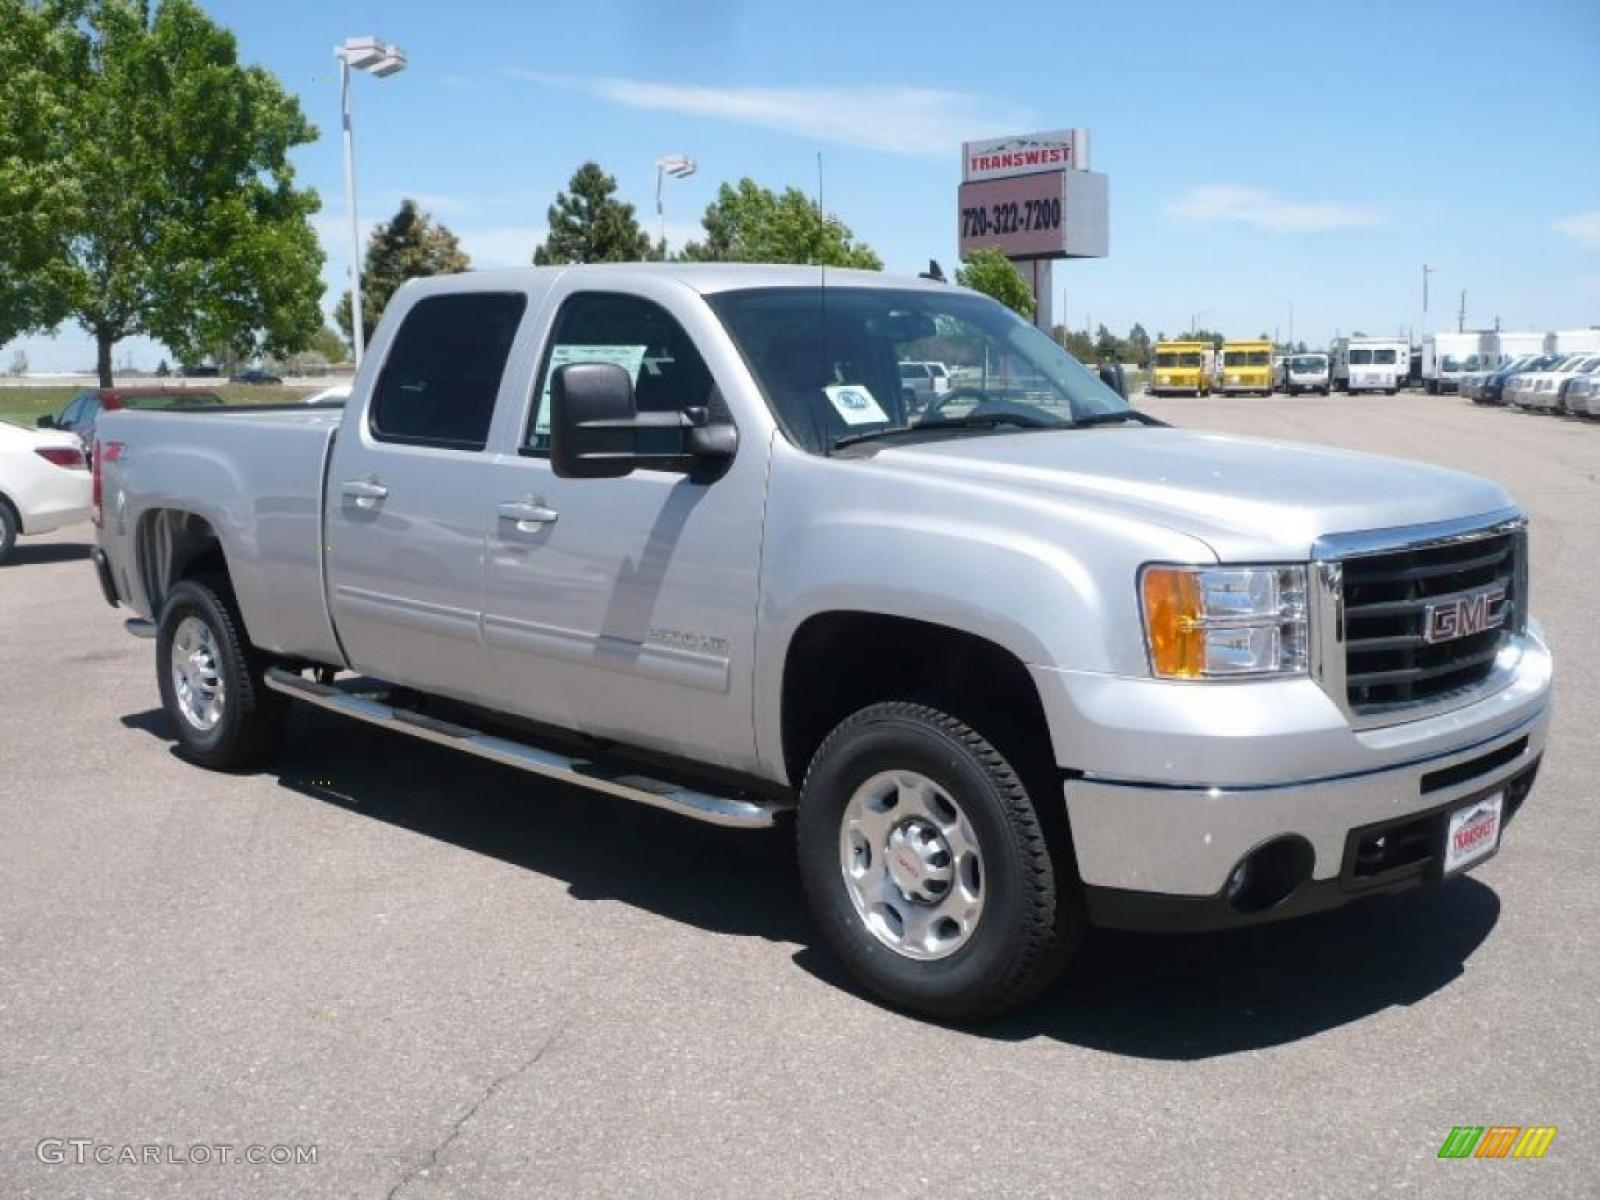 2010 gmc sierra 2500 hd crew cab kelley blue book autos. Black Bedroom Furniture Sets. Home Design Ideas